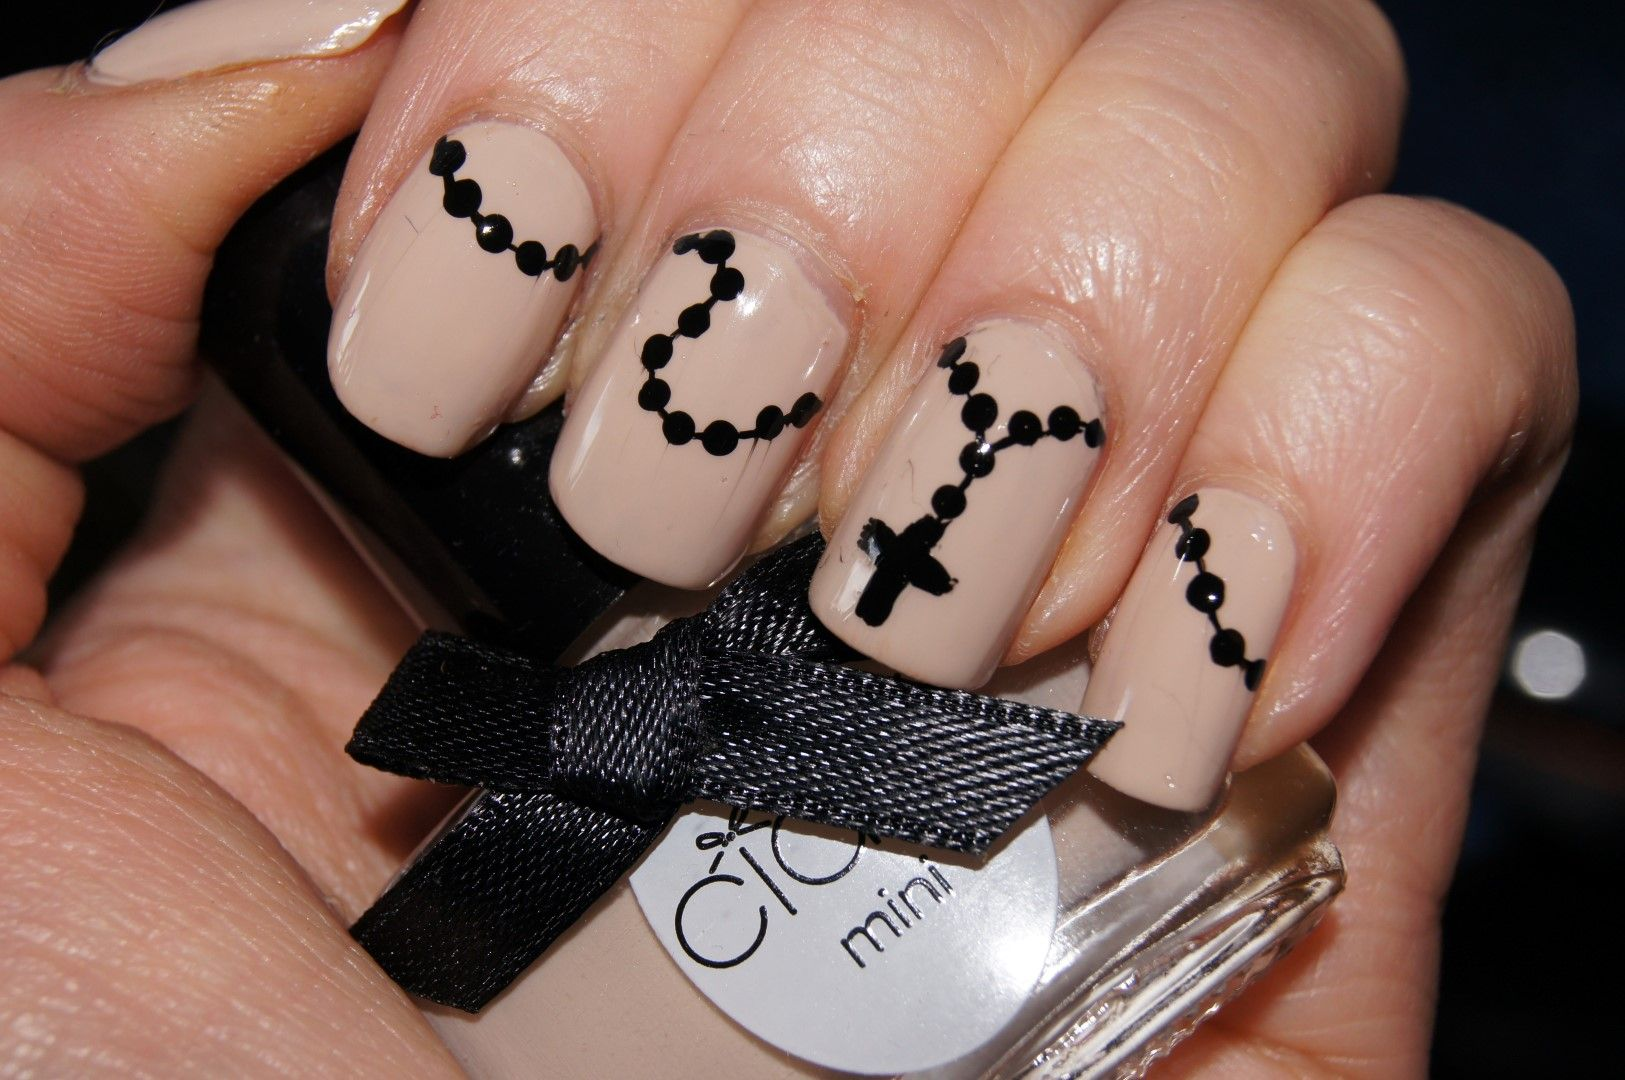 Rosary nails black n beige by johanna v. | Nails | Pinterest ...